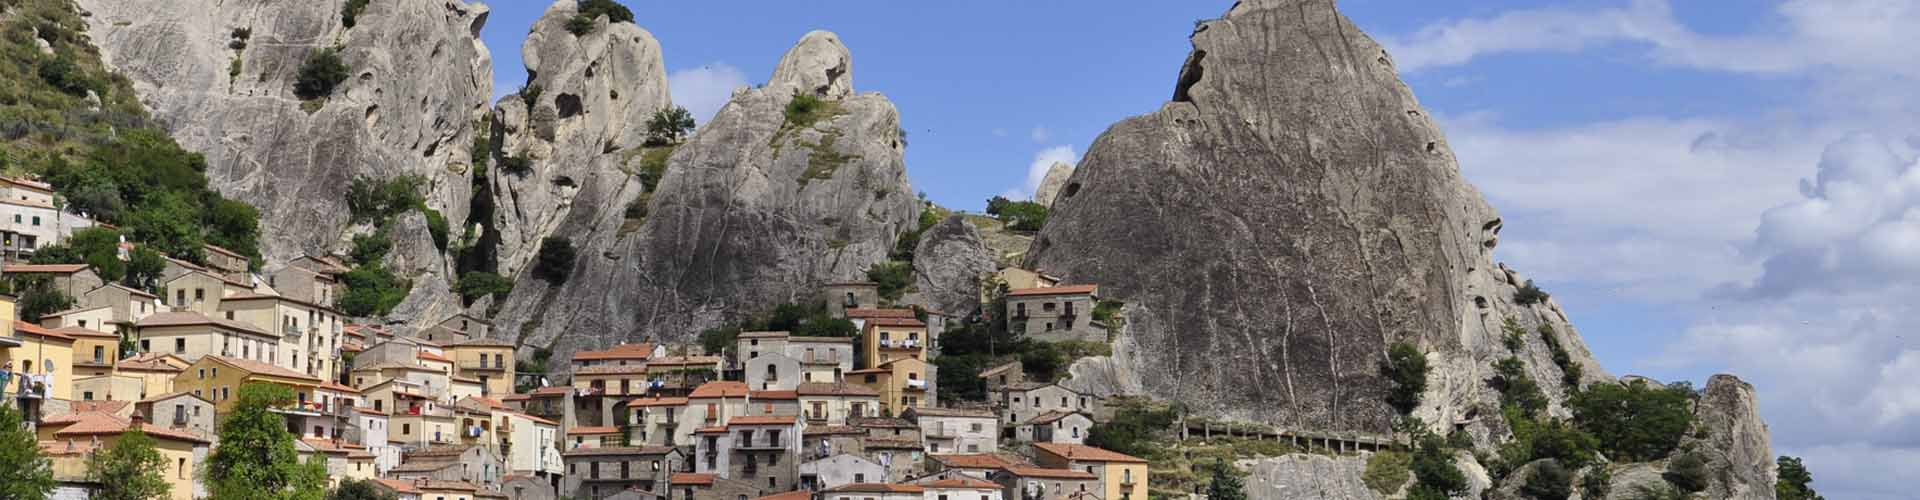 Things to do in Basilicata